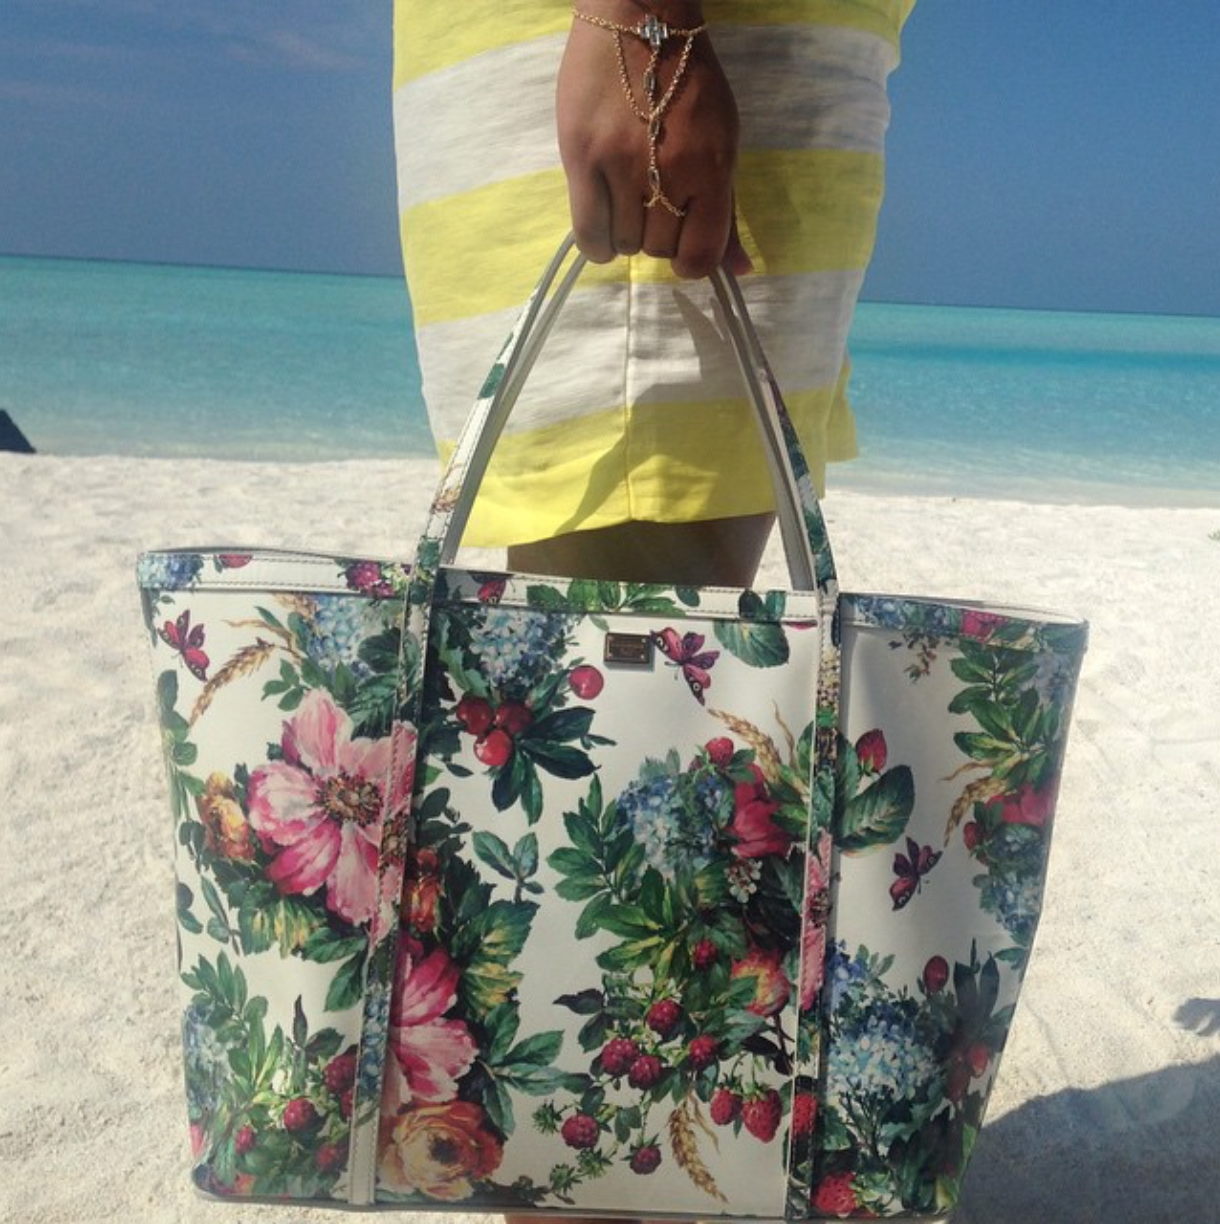 Dolce & Gabbana Floral 'Escape' Tote and Isharya Hand-Harness.